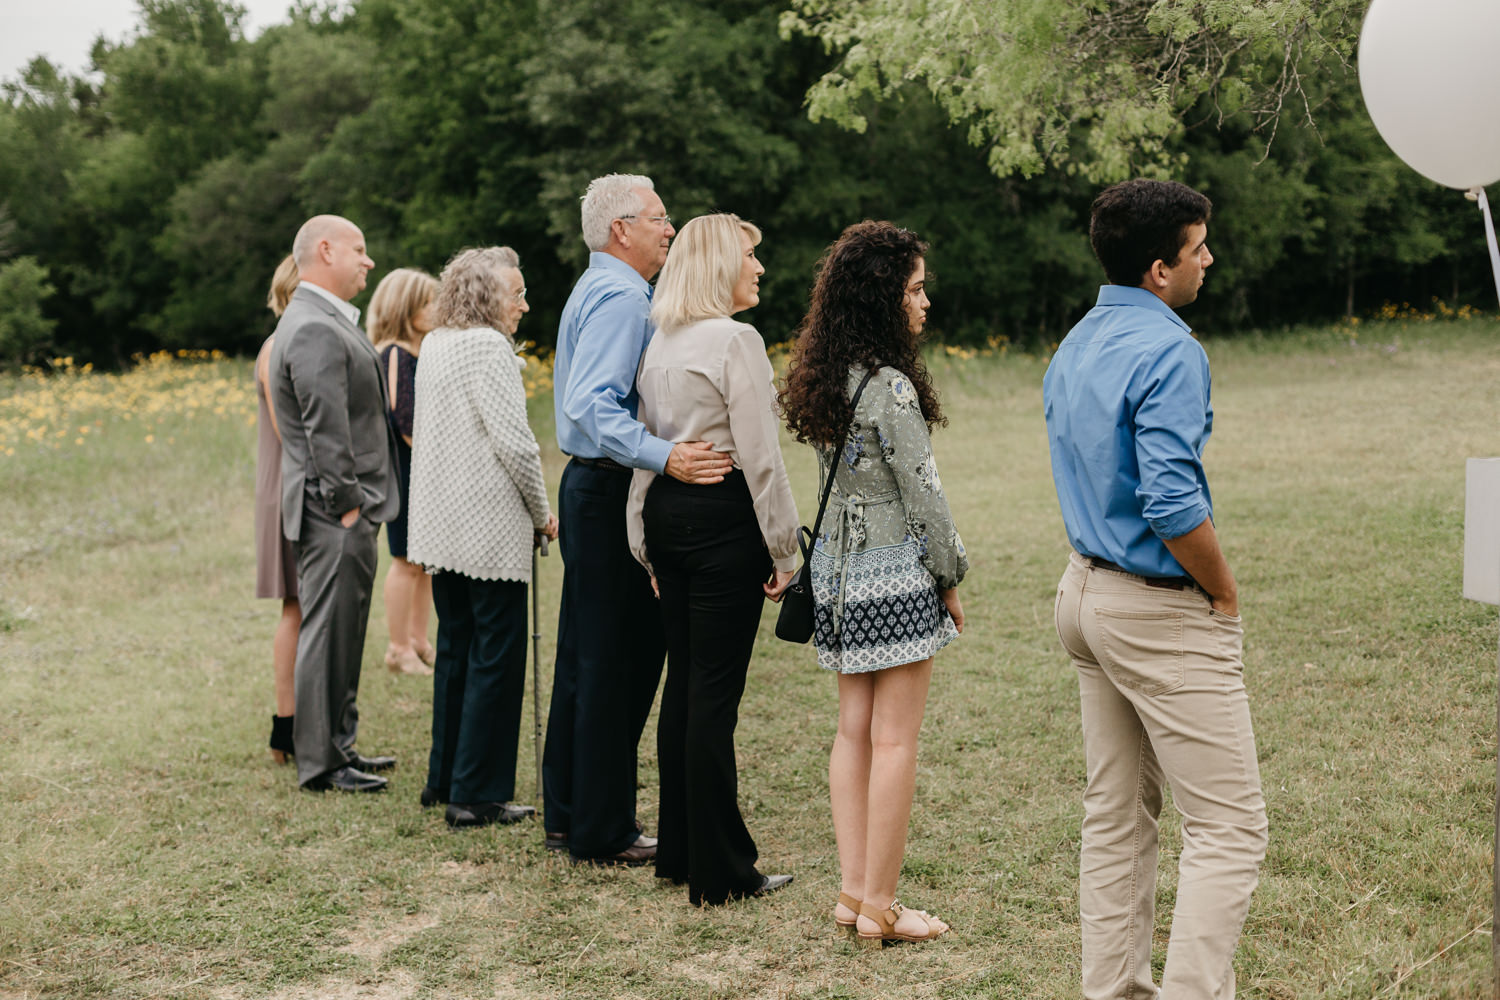 HaileyDylan_Austin Elopement Photographer Austin Wedding Photographer-73.jpg